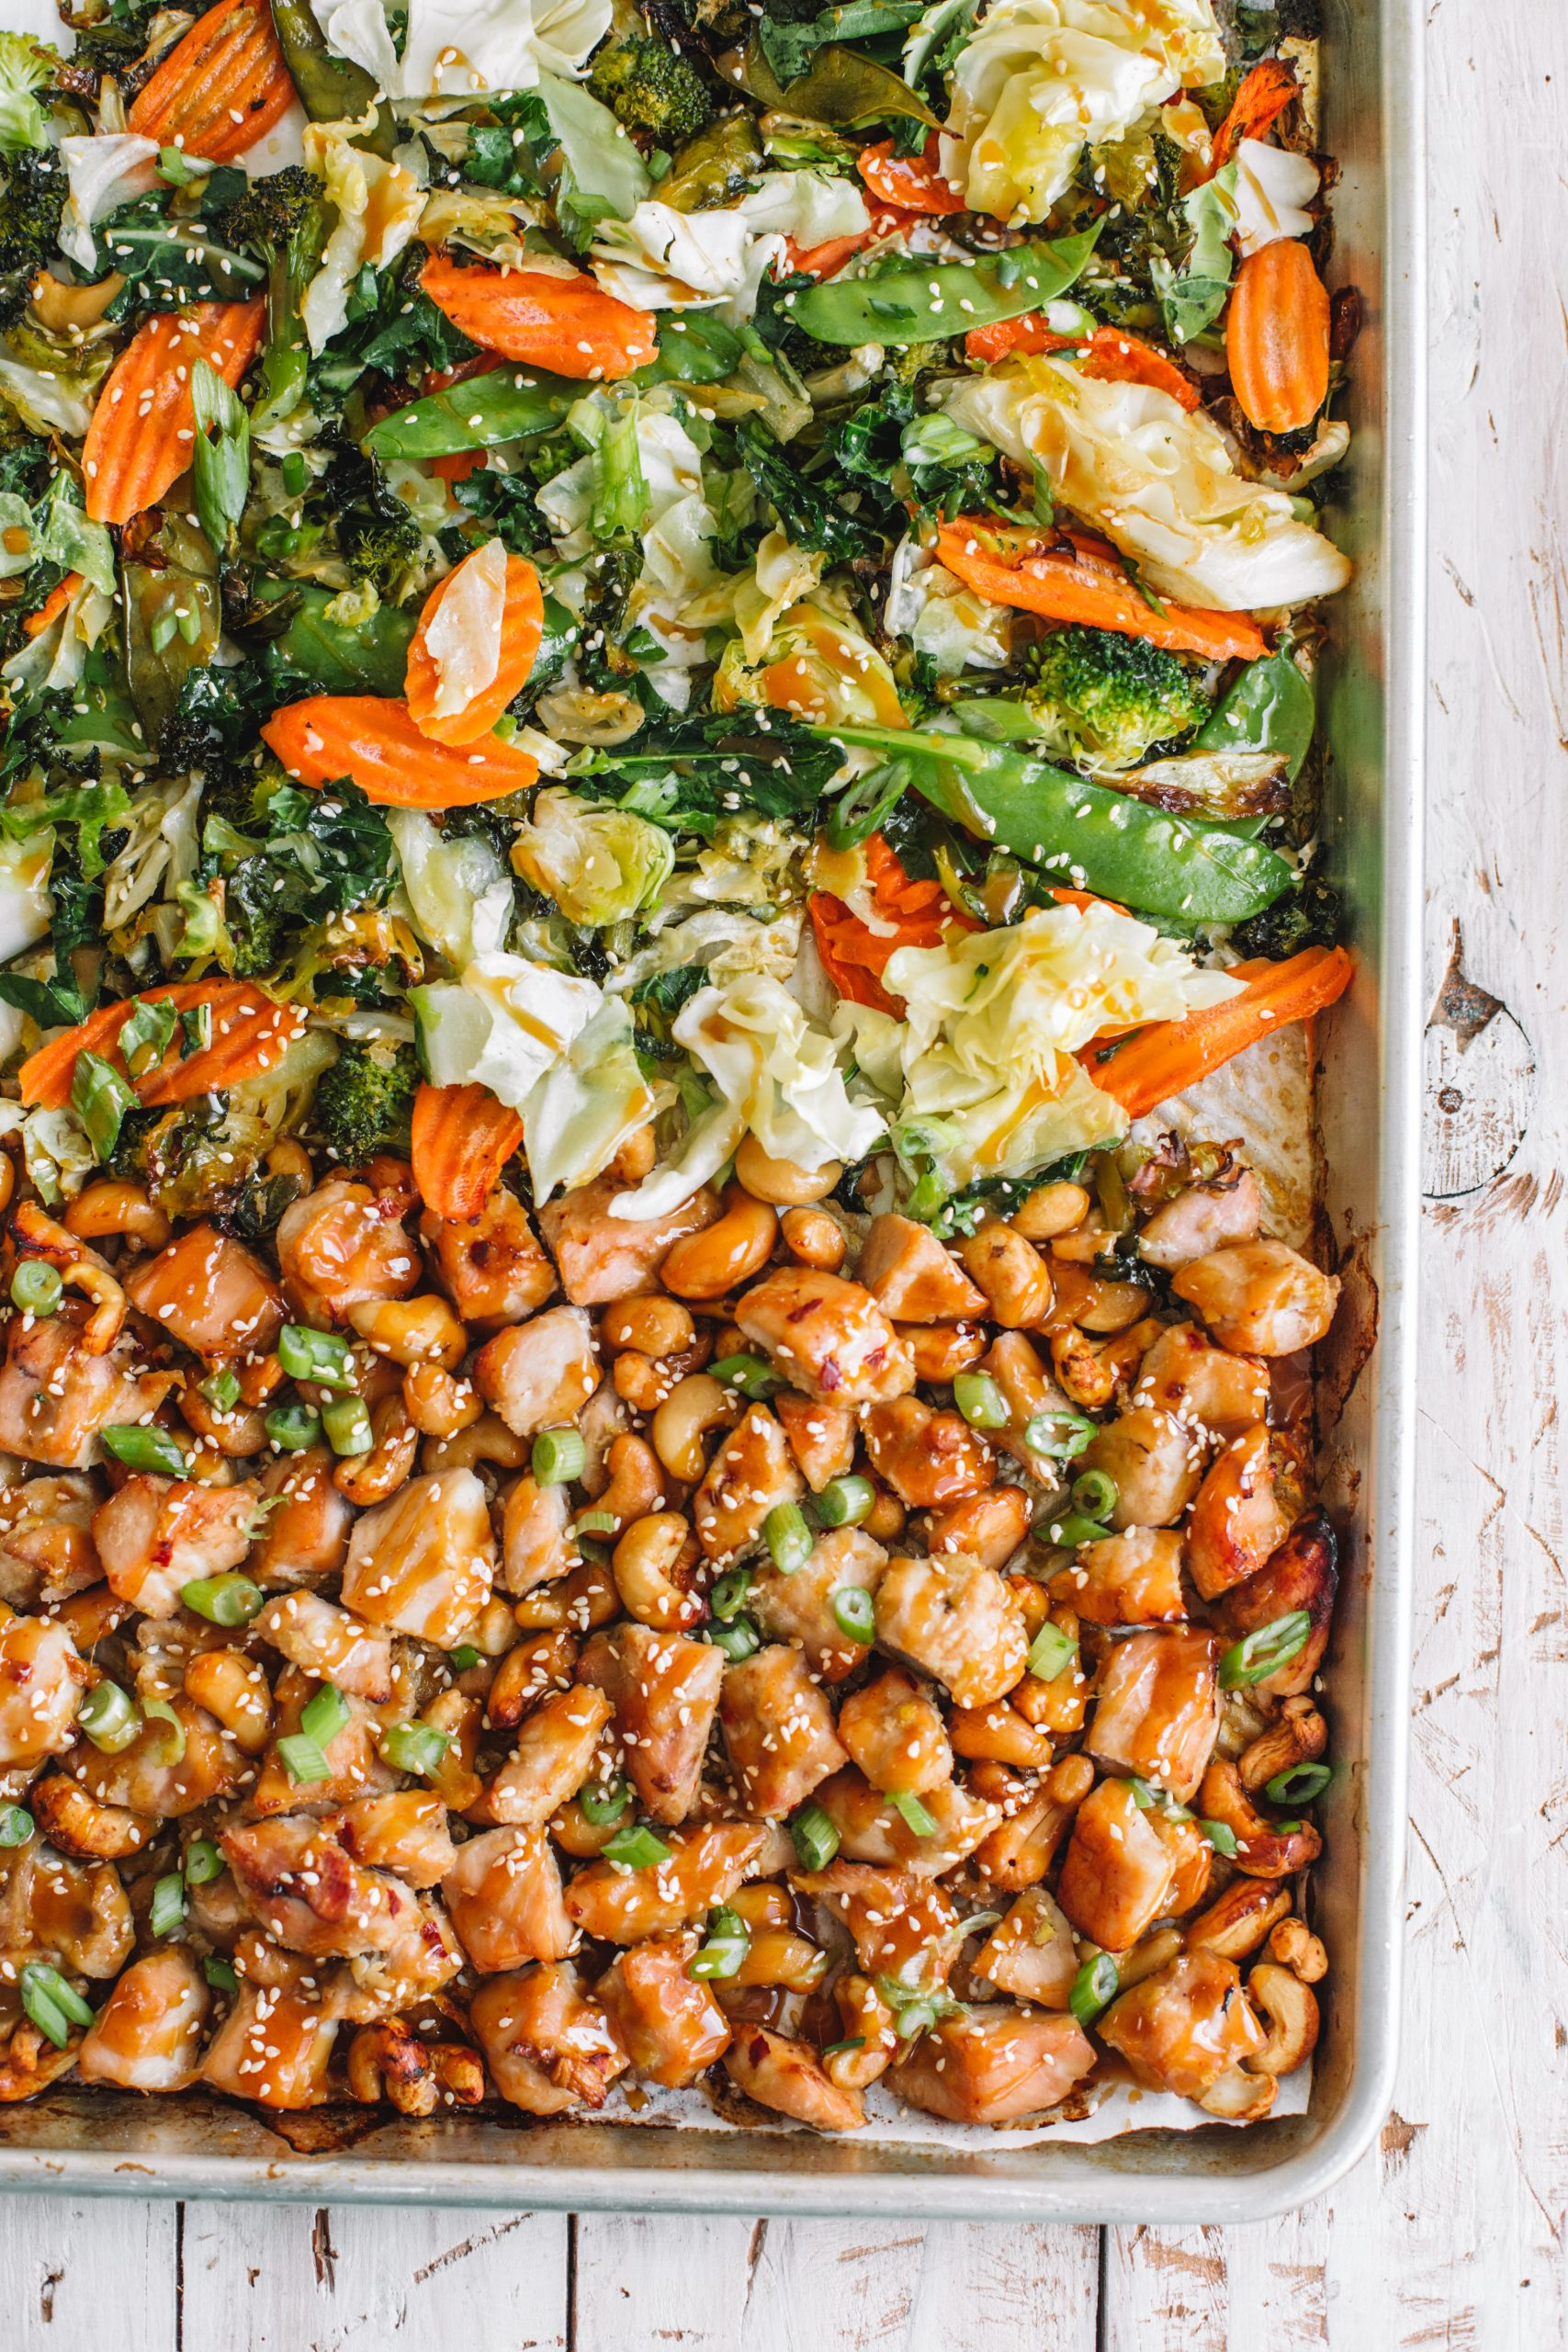 A sheet pan baking tray filled with baked cashew chicken and asian vegetables.